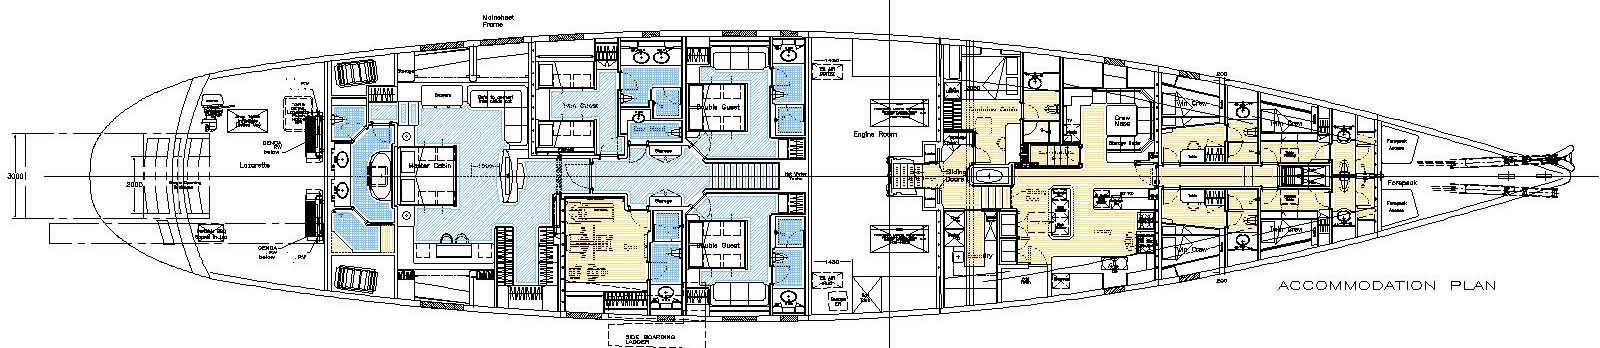 RED DRAGON - The Accommodation Layout